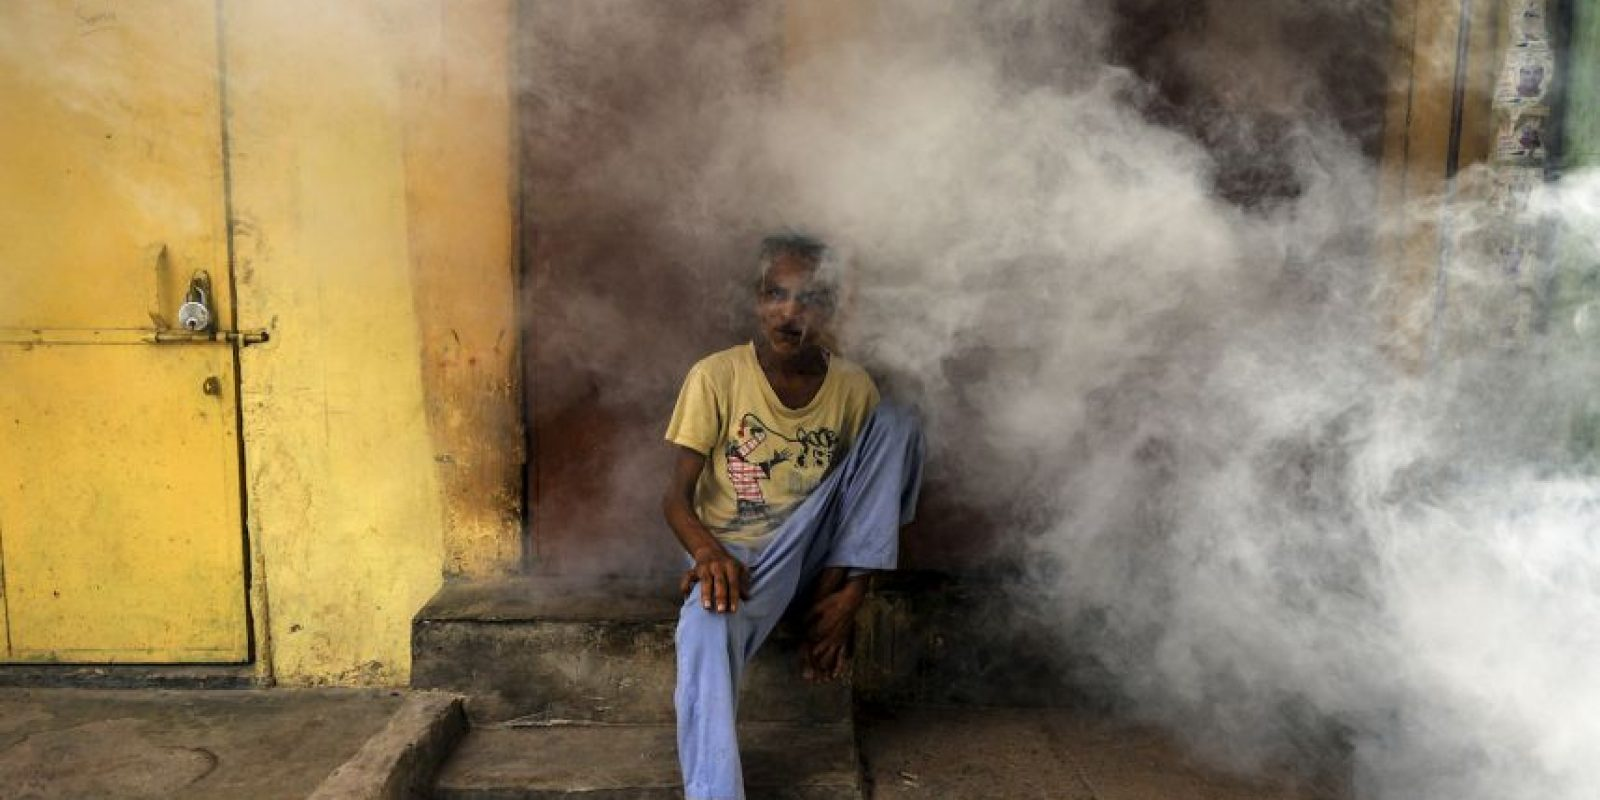 Fumigan en India por la amenaza del dengue. Foto: AFP